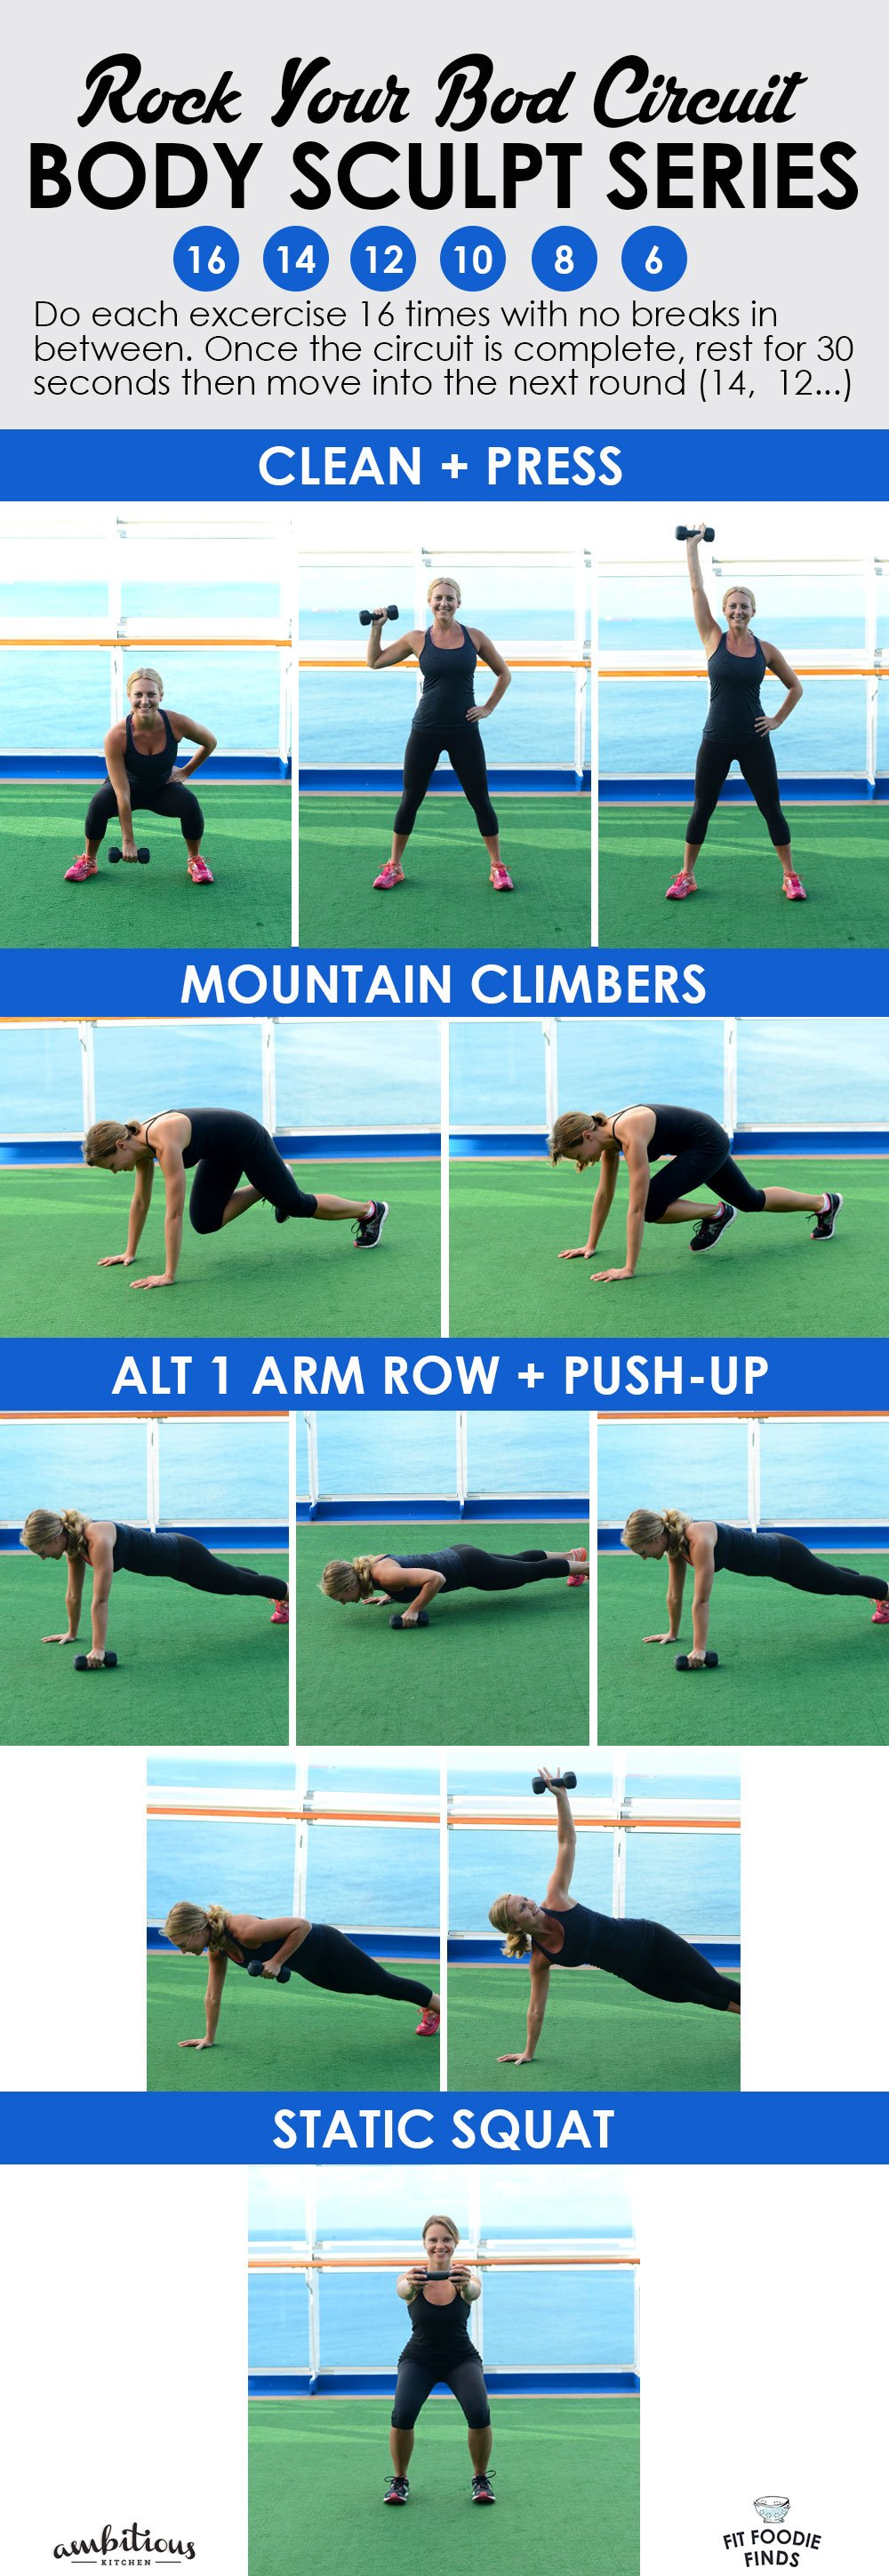 rock your bod circuit graphic